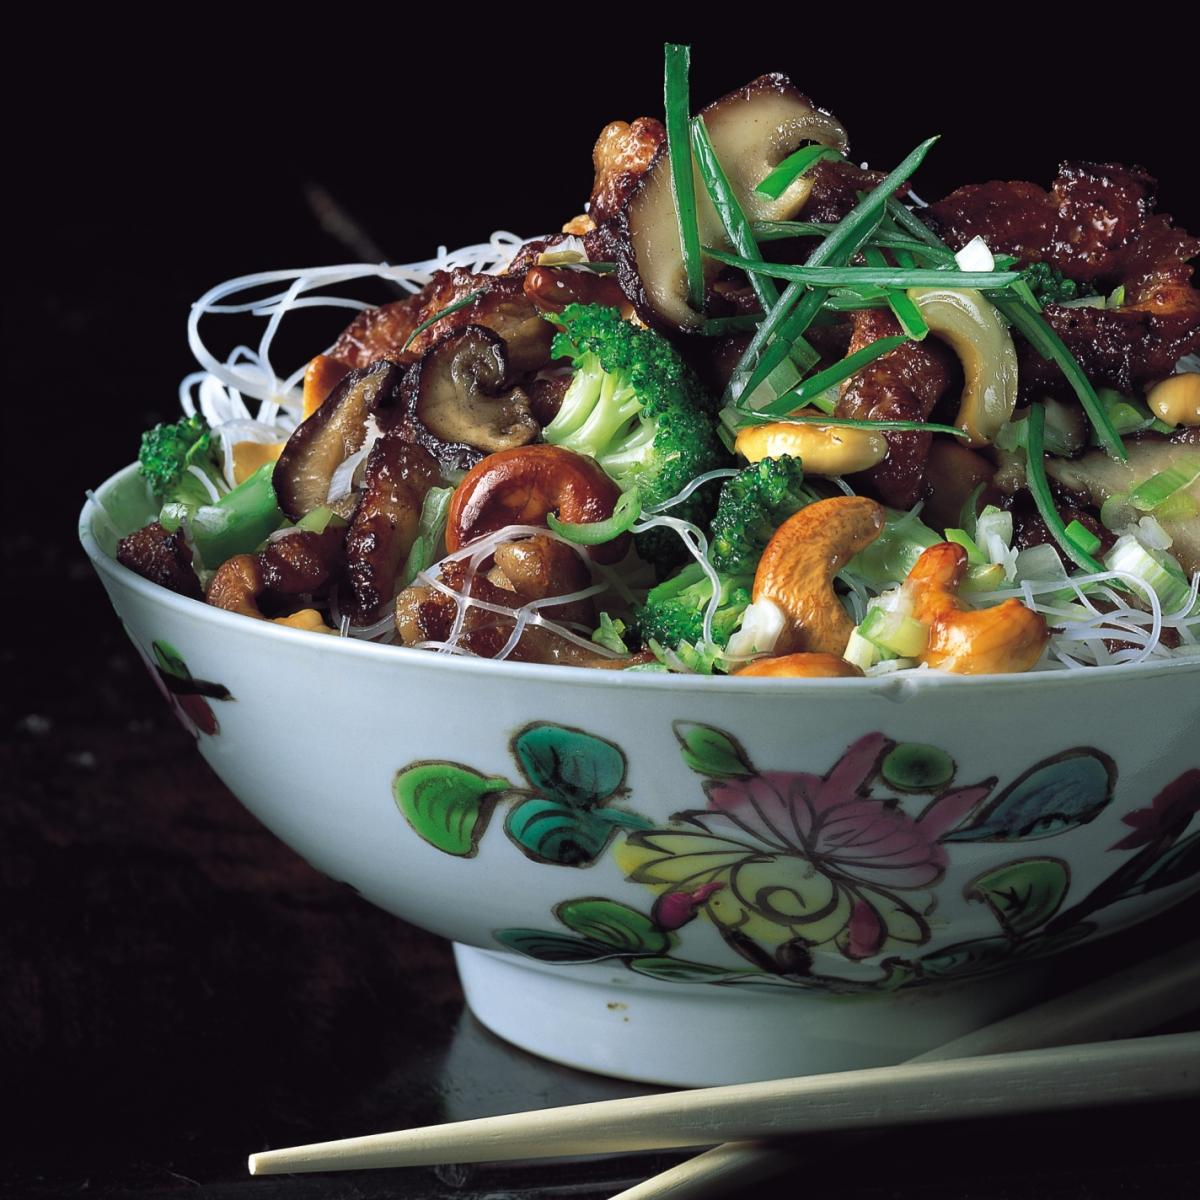 A picture of Delia's Oriental Chicken Stir-fry with Broccoli, Cashew Nuts and Shiitake Mushrooms recipe